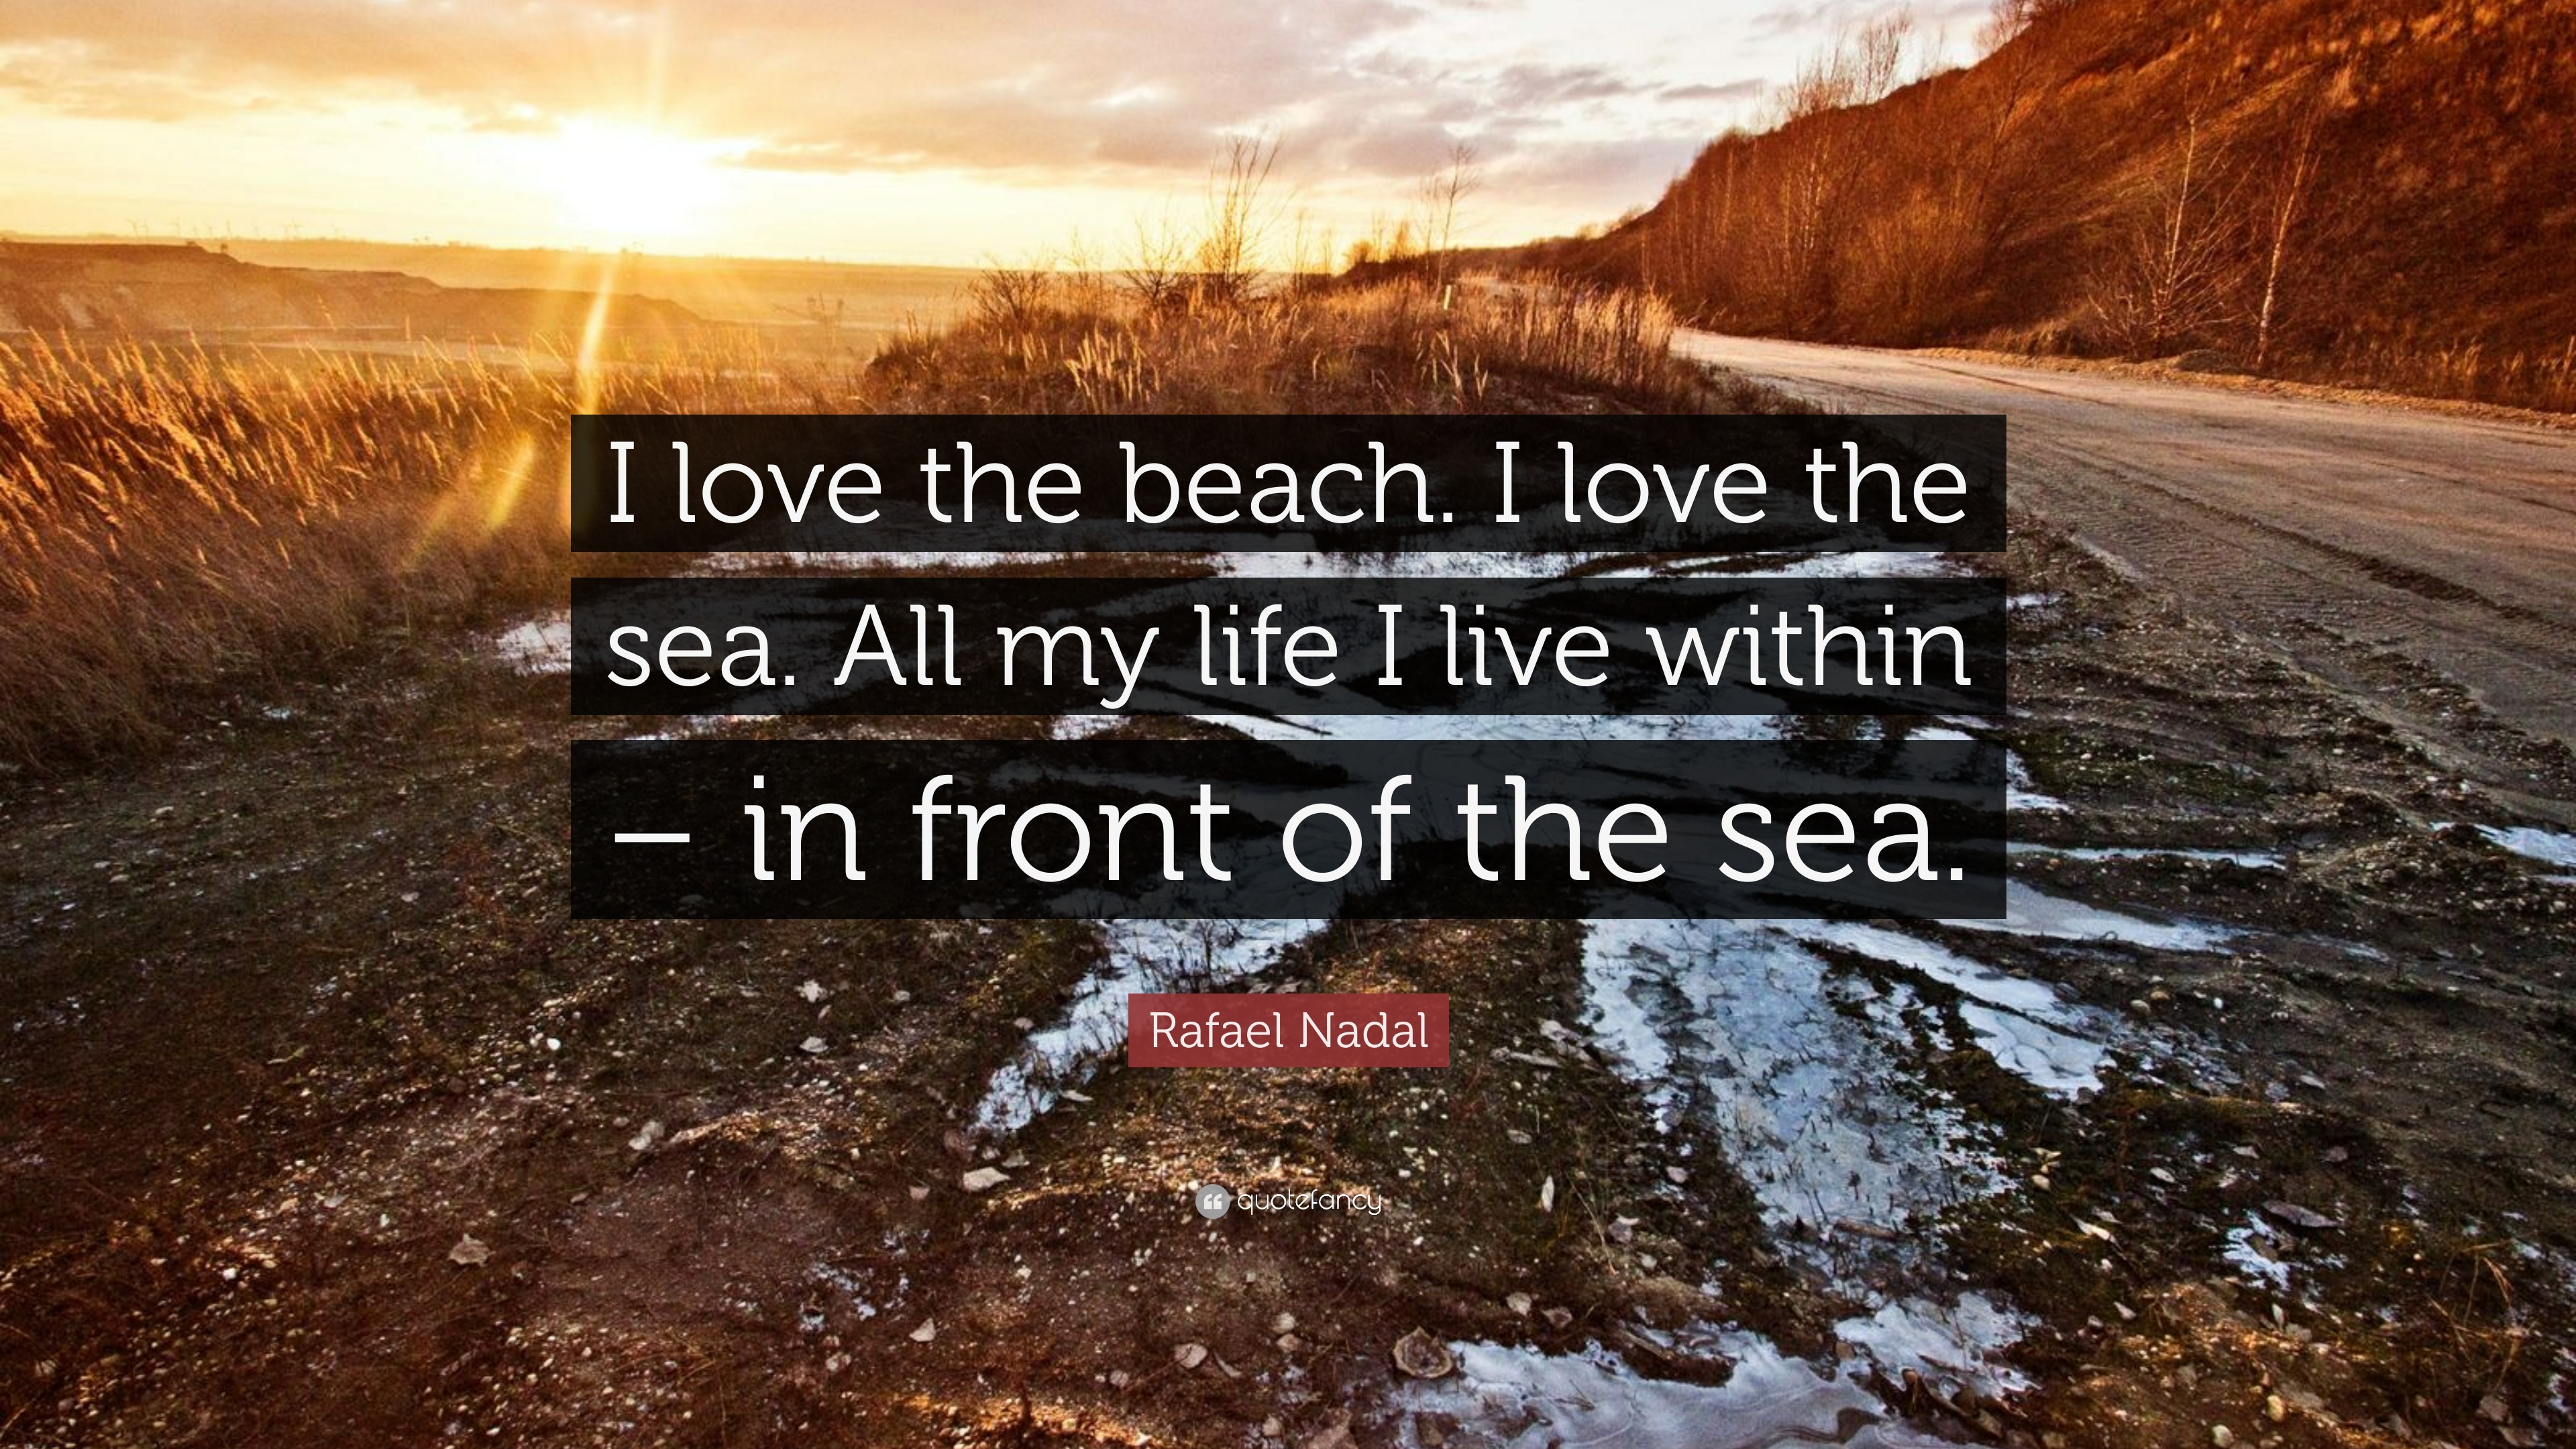 Rafael Nadal Quote: U201cI Love The Beach. I Love The Sea. All